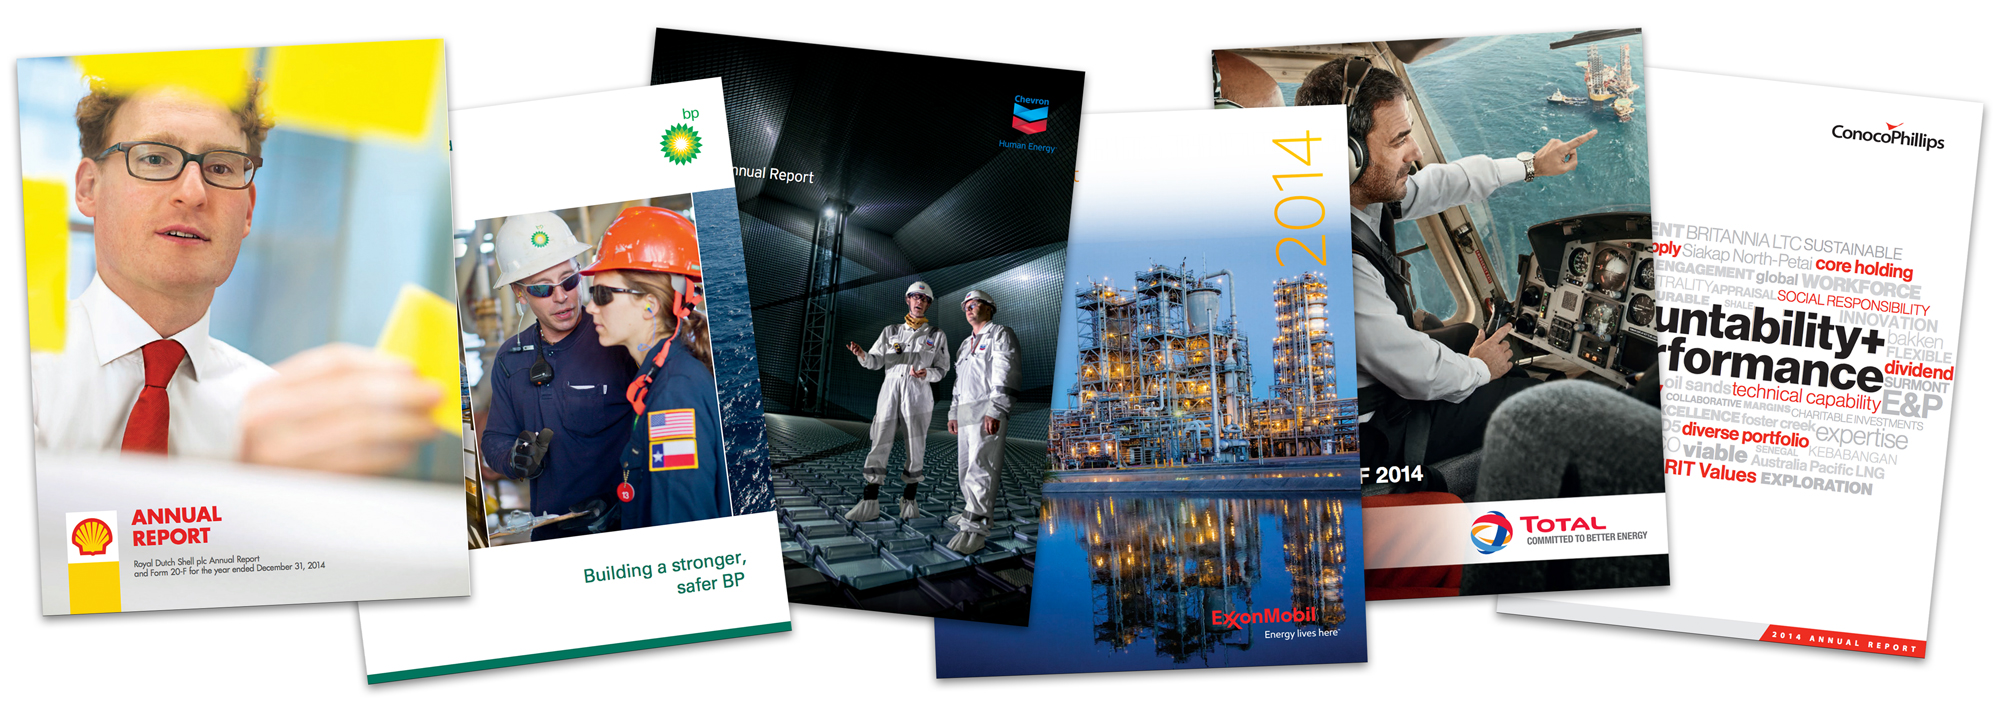 Basket of Oil Annual Reports Joshua Kennon Investing